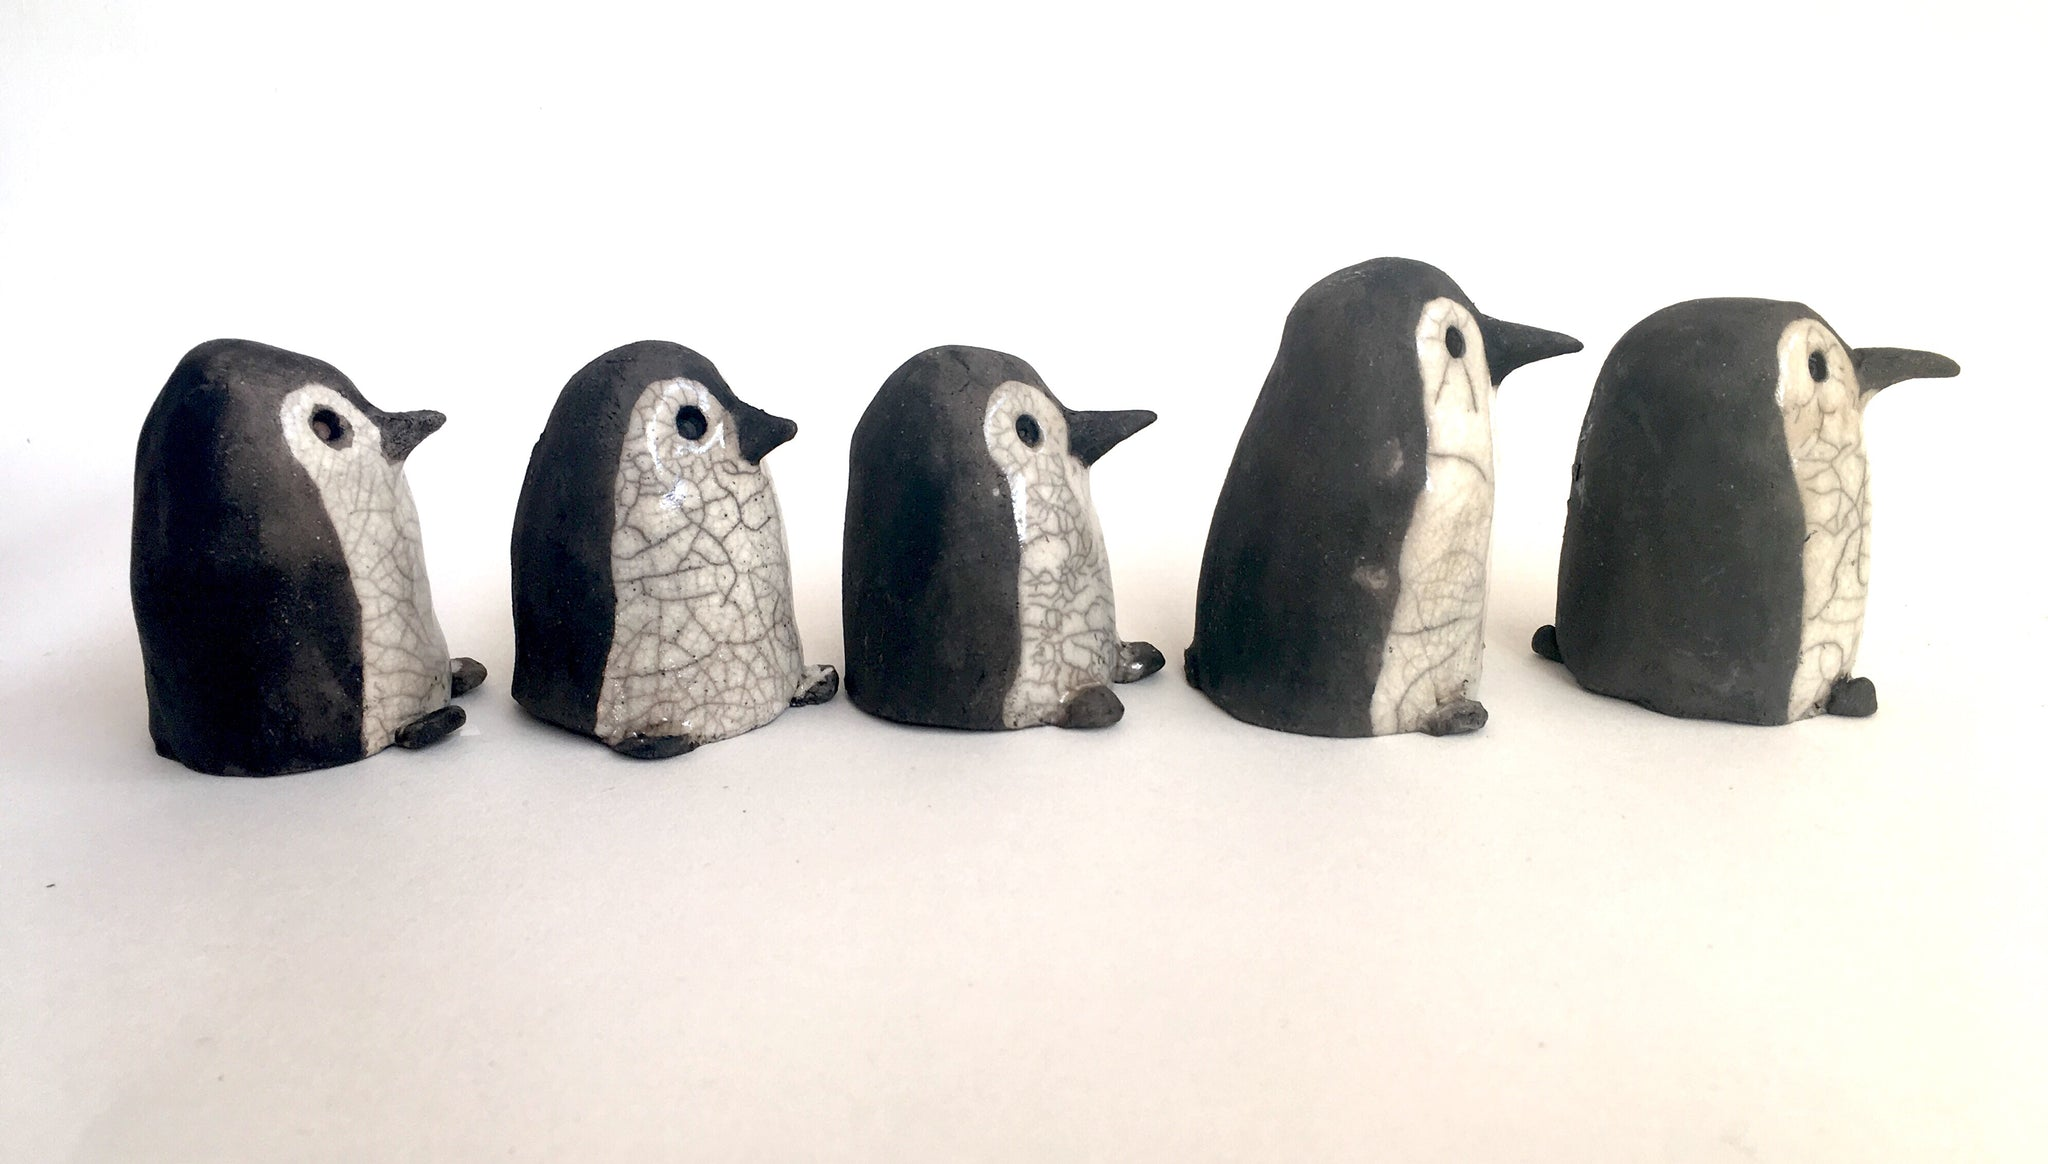 Ceramic Penguins - Raku fired